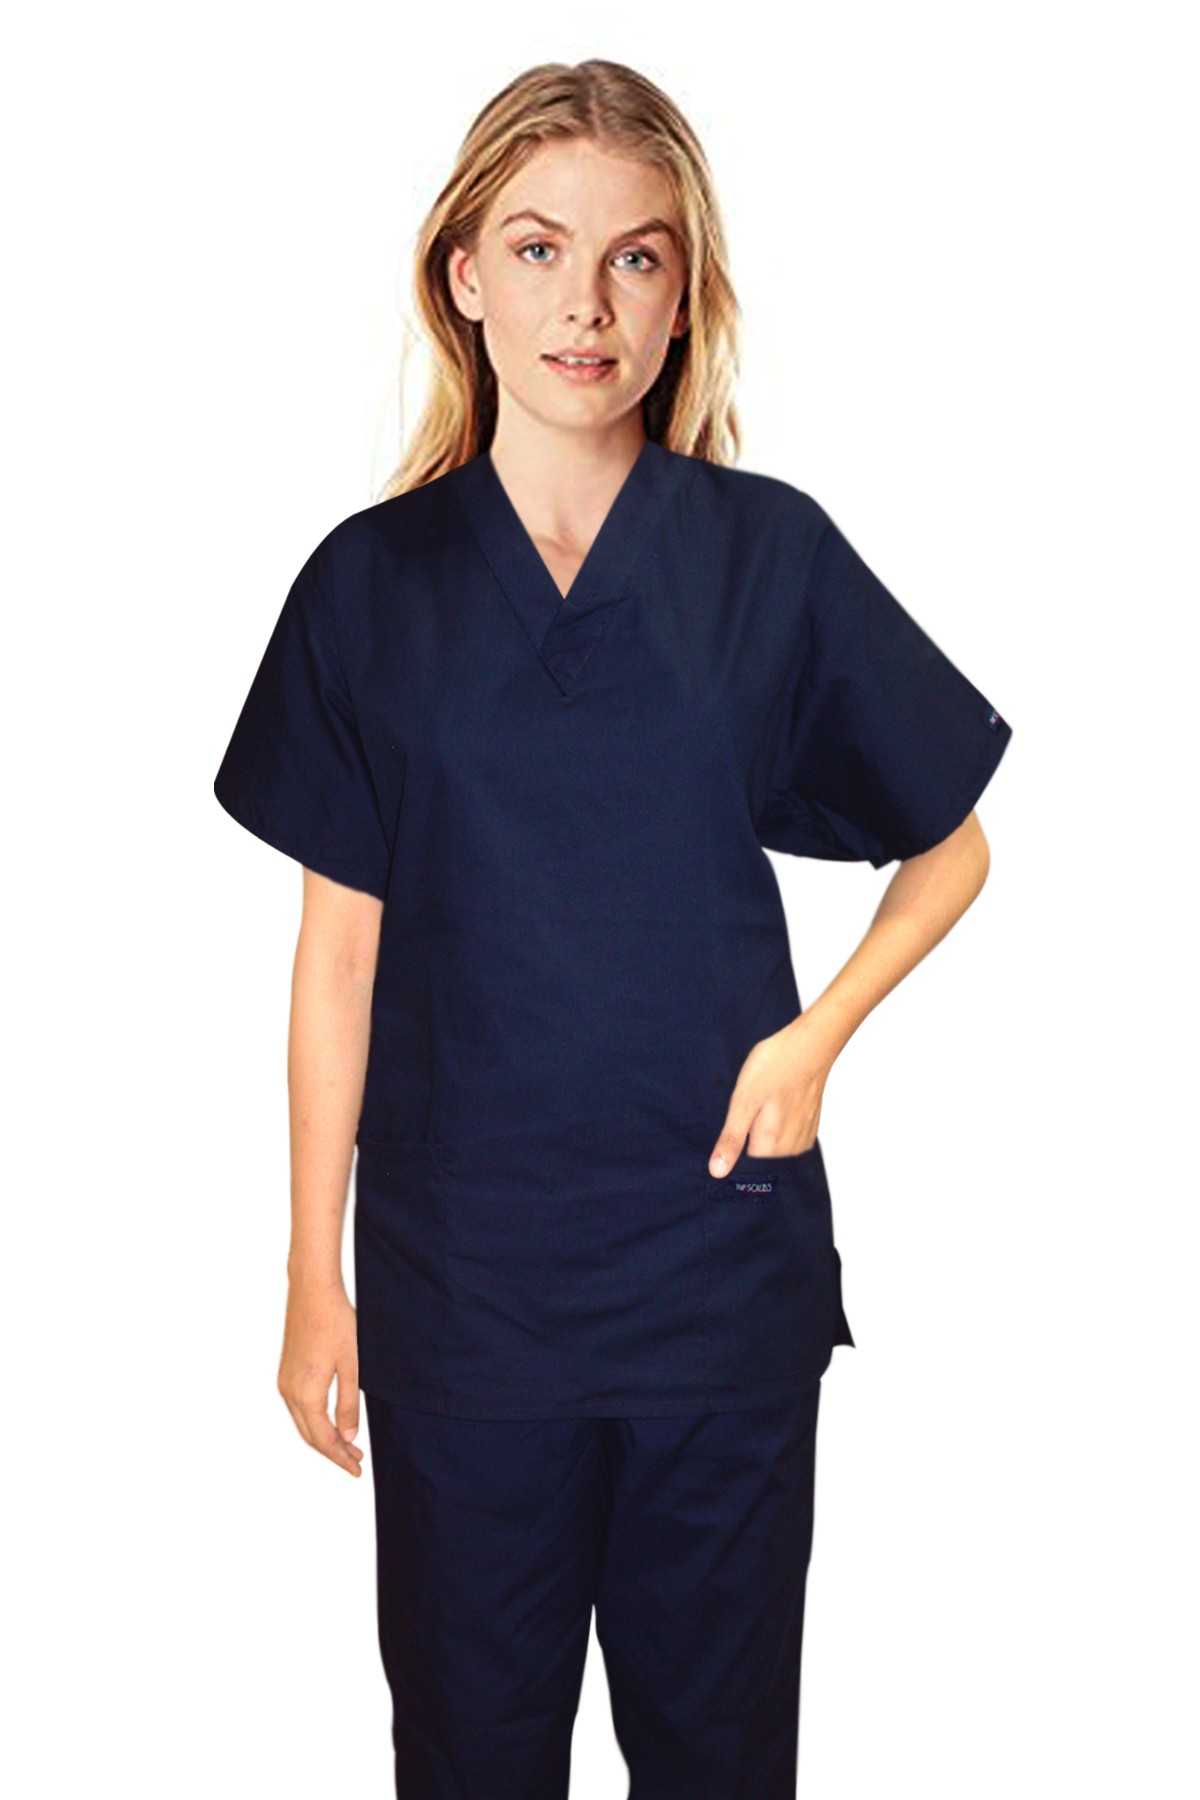 Stretchable Scrub set 4 pocket solid ladies half sleeve (2 pocket top and 2 pocket pant) 97% Cotton 3% Spandex